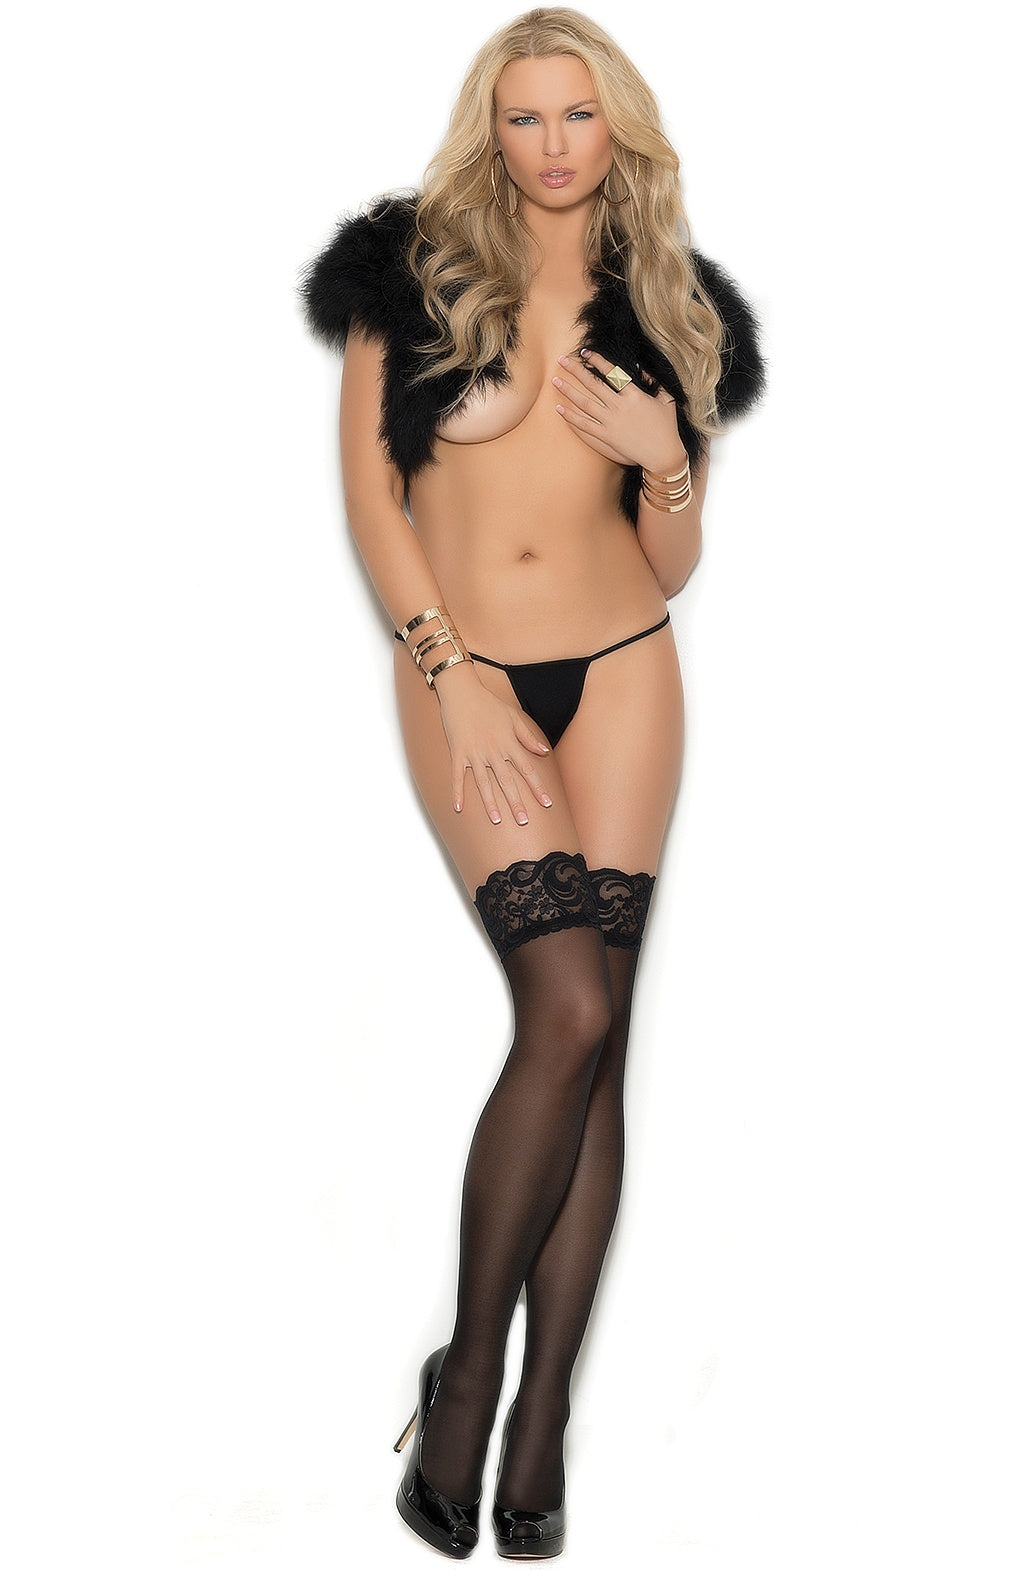 EM-1186 Sheer black thigh hi